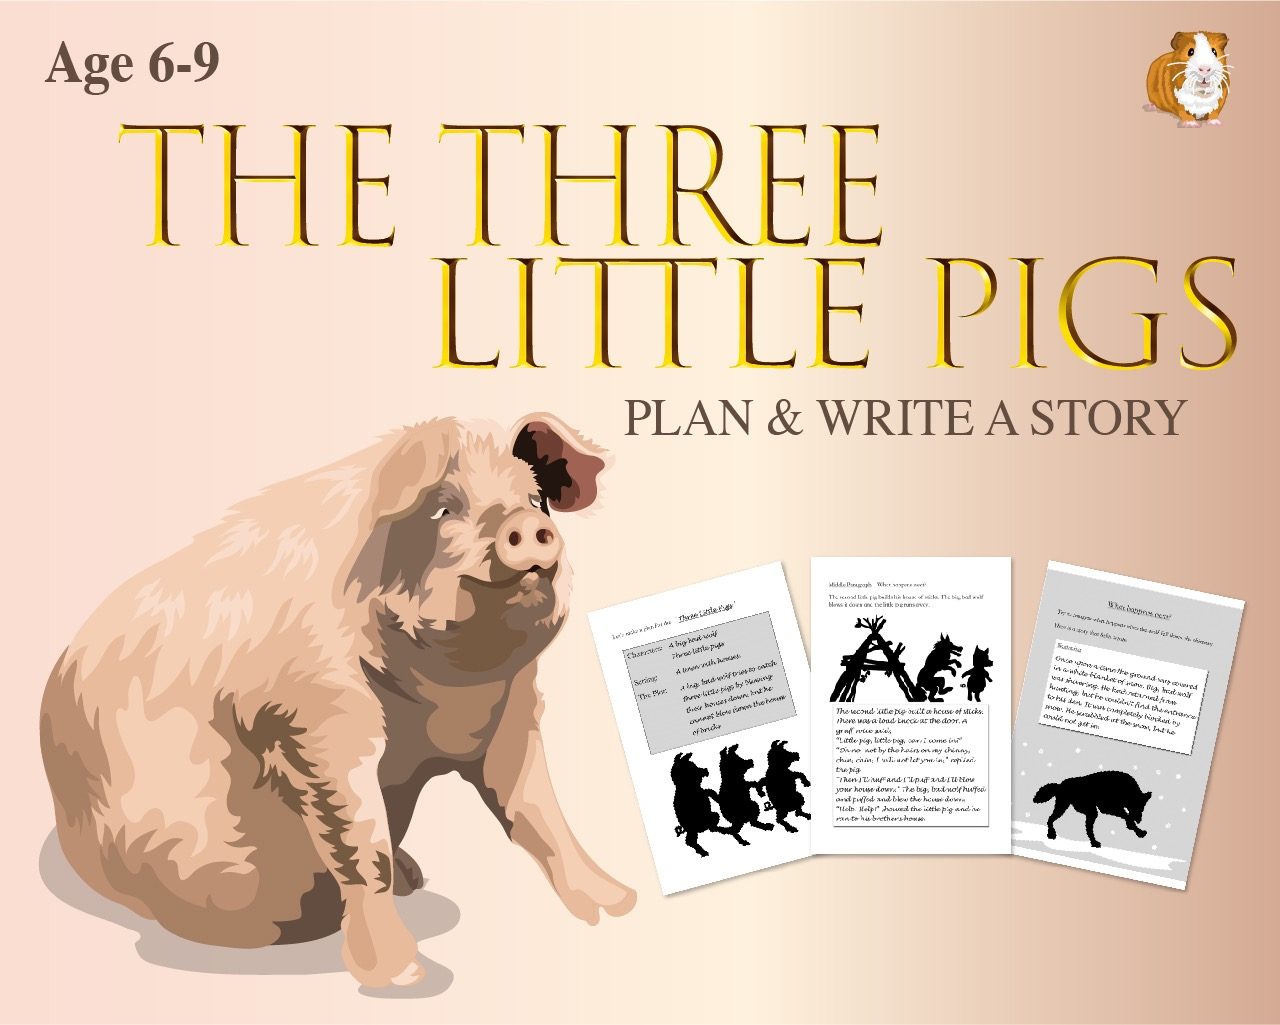 Plan And Write The Story Of 'The Three Little Pigs' (6-9 years)